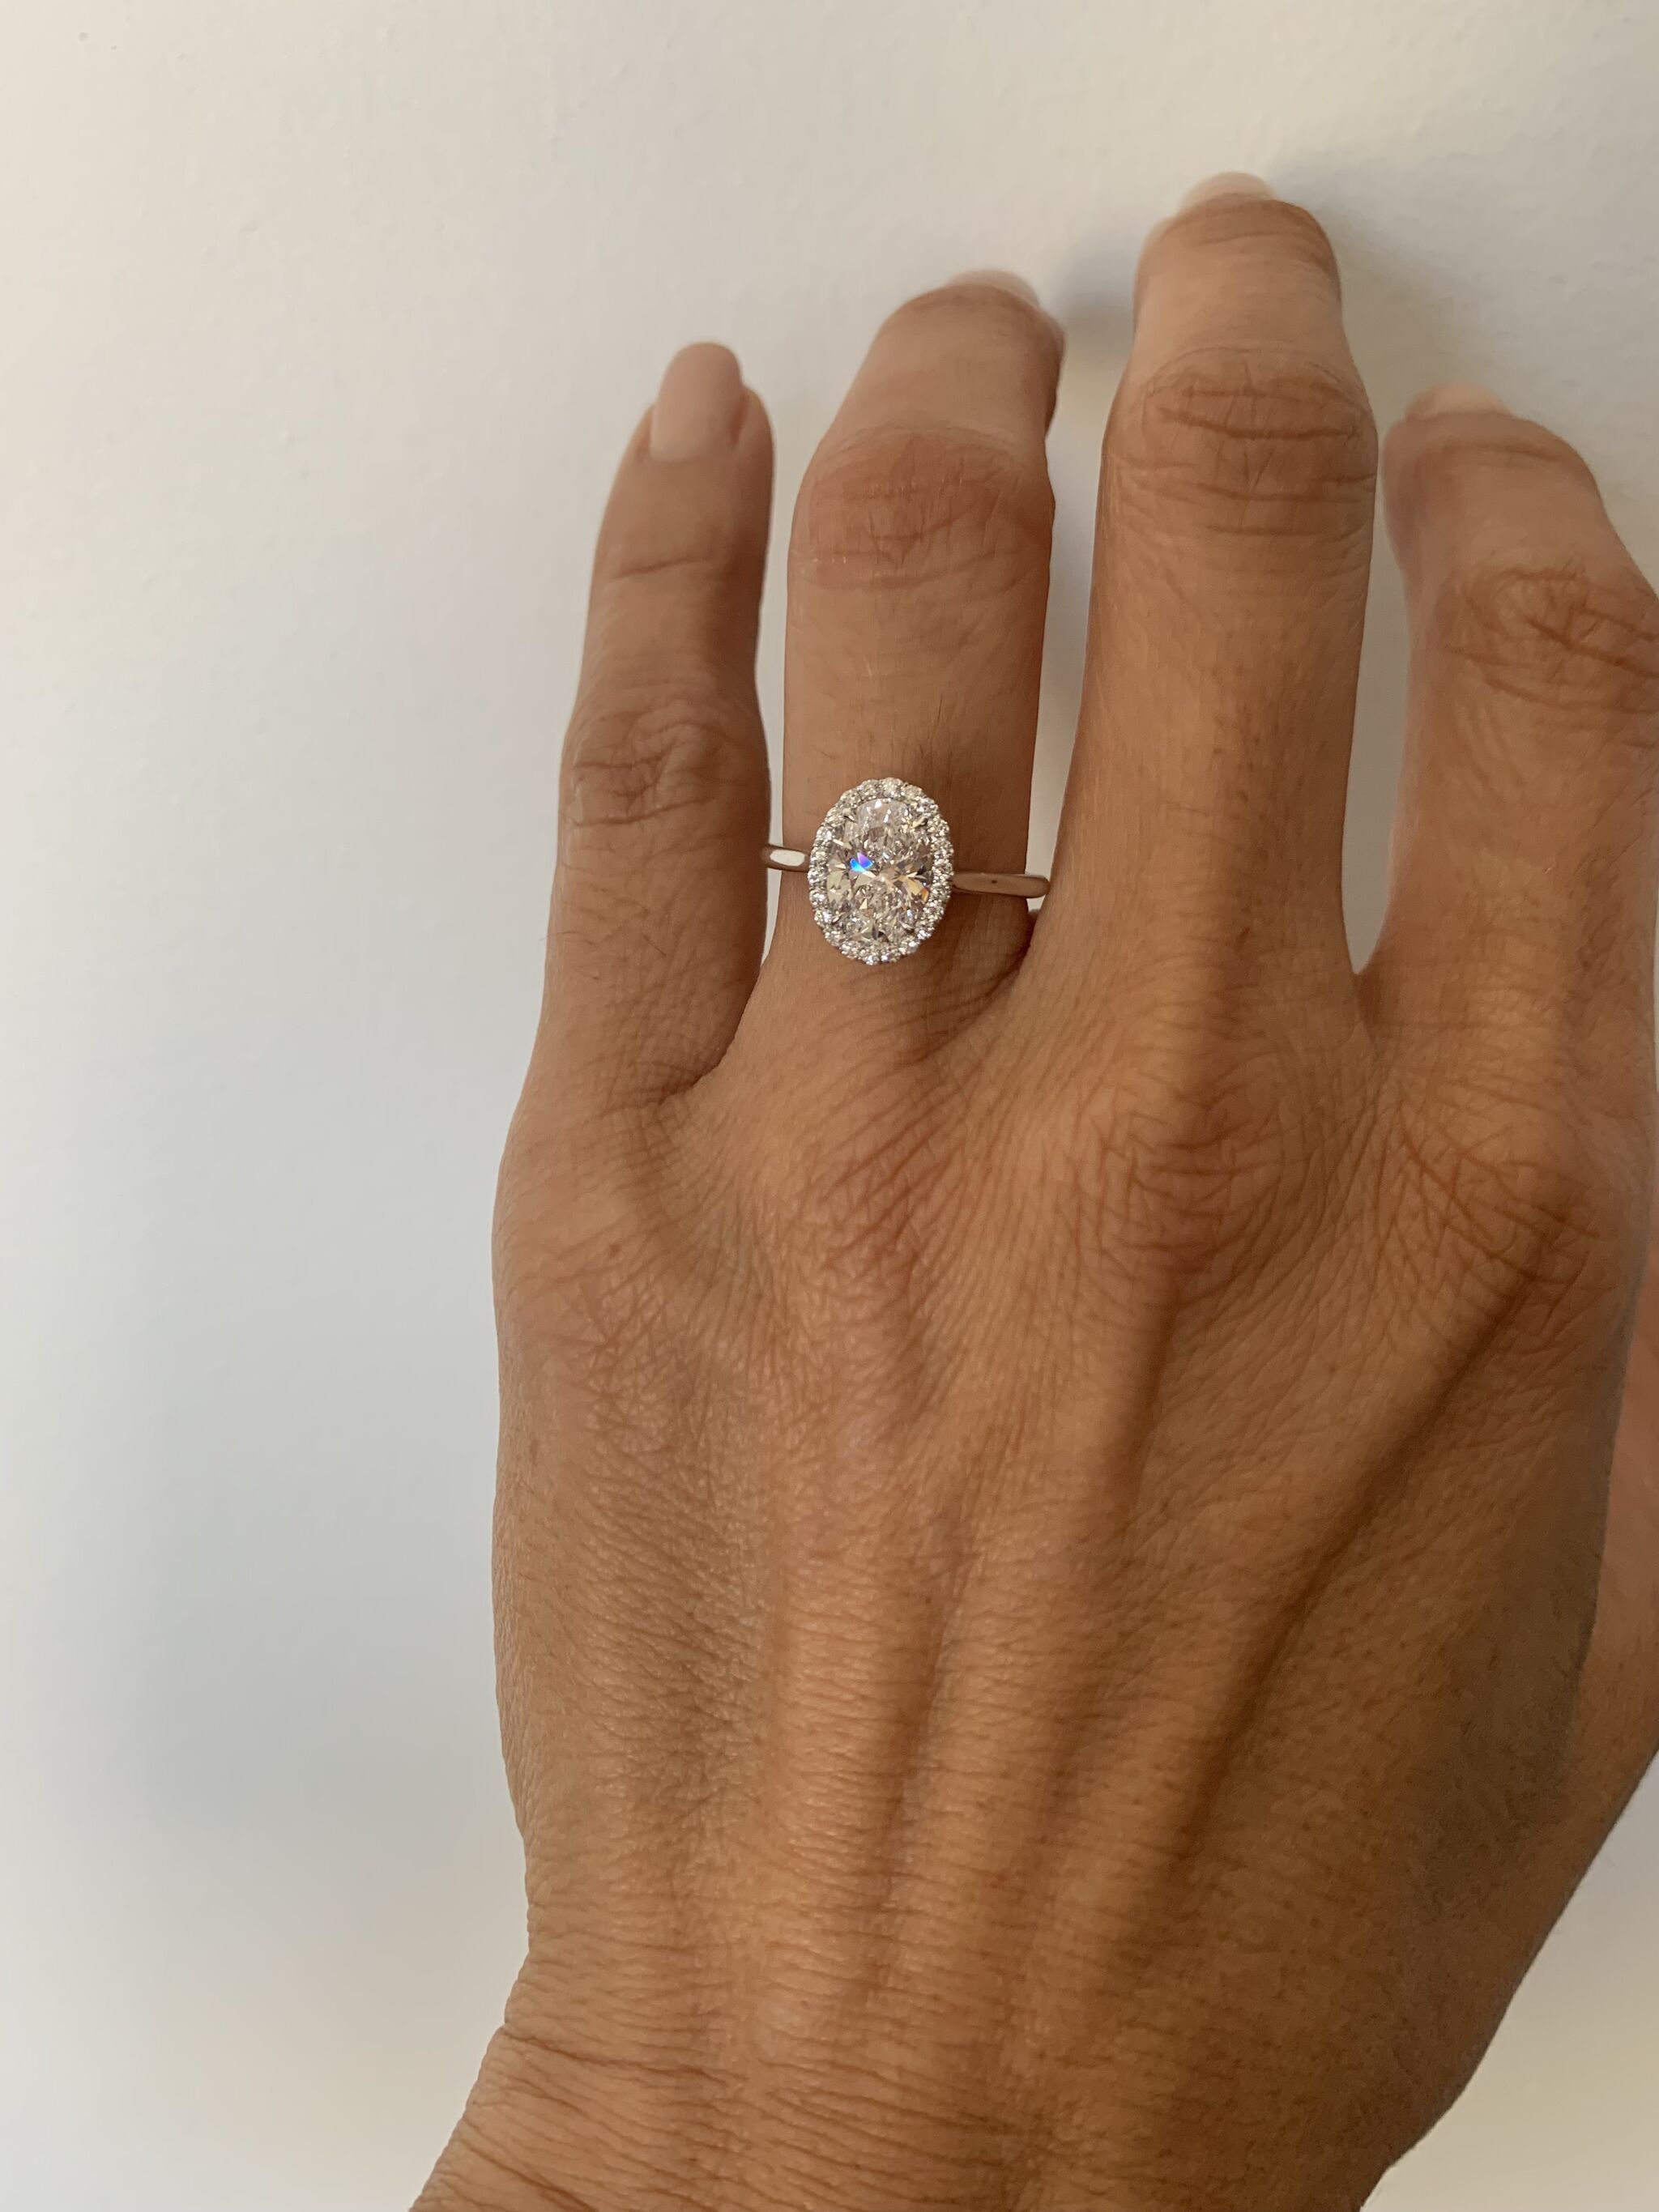 Plain Band Oval Halo Engagement Setting In 14k Rose Gold In 2020 Engagement Ring Plain Band Oval Halo Engagement Ring Gold Band Engagement Rings